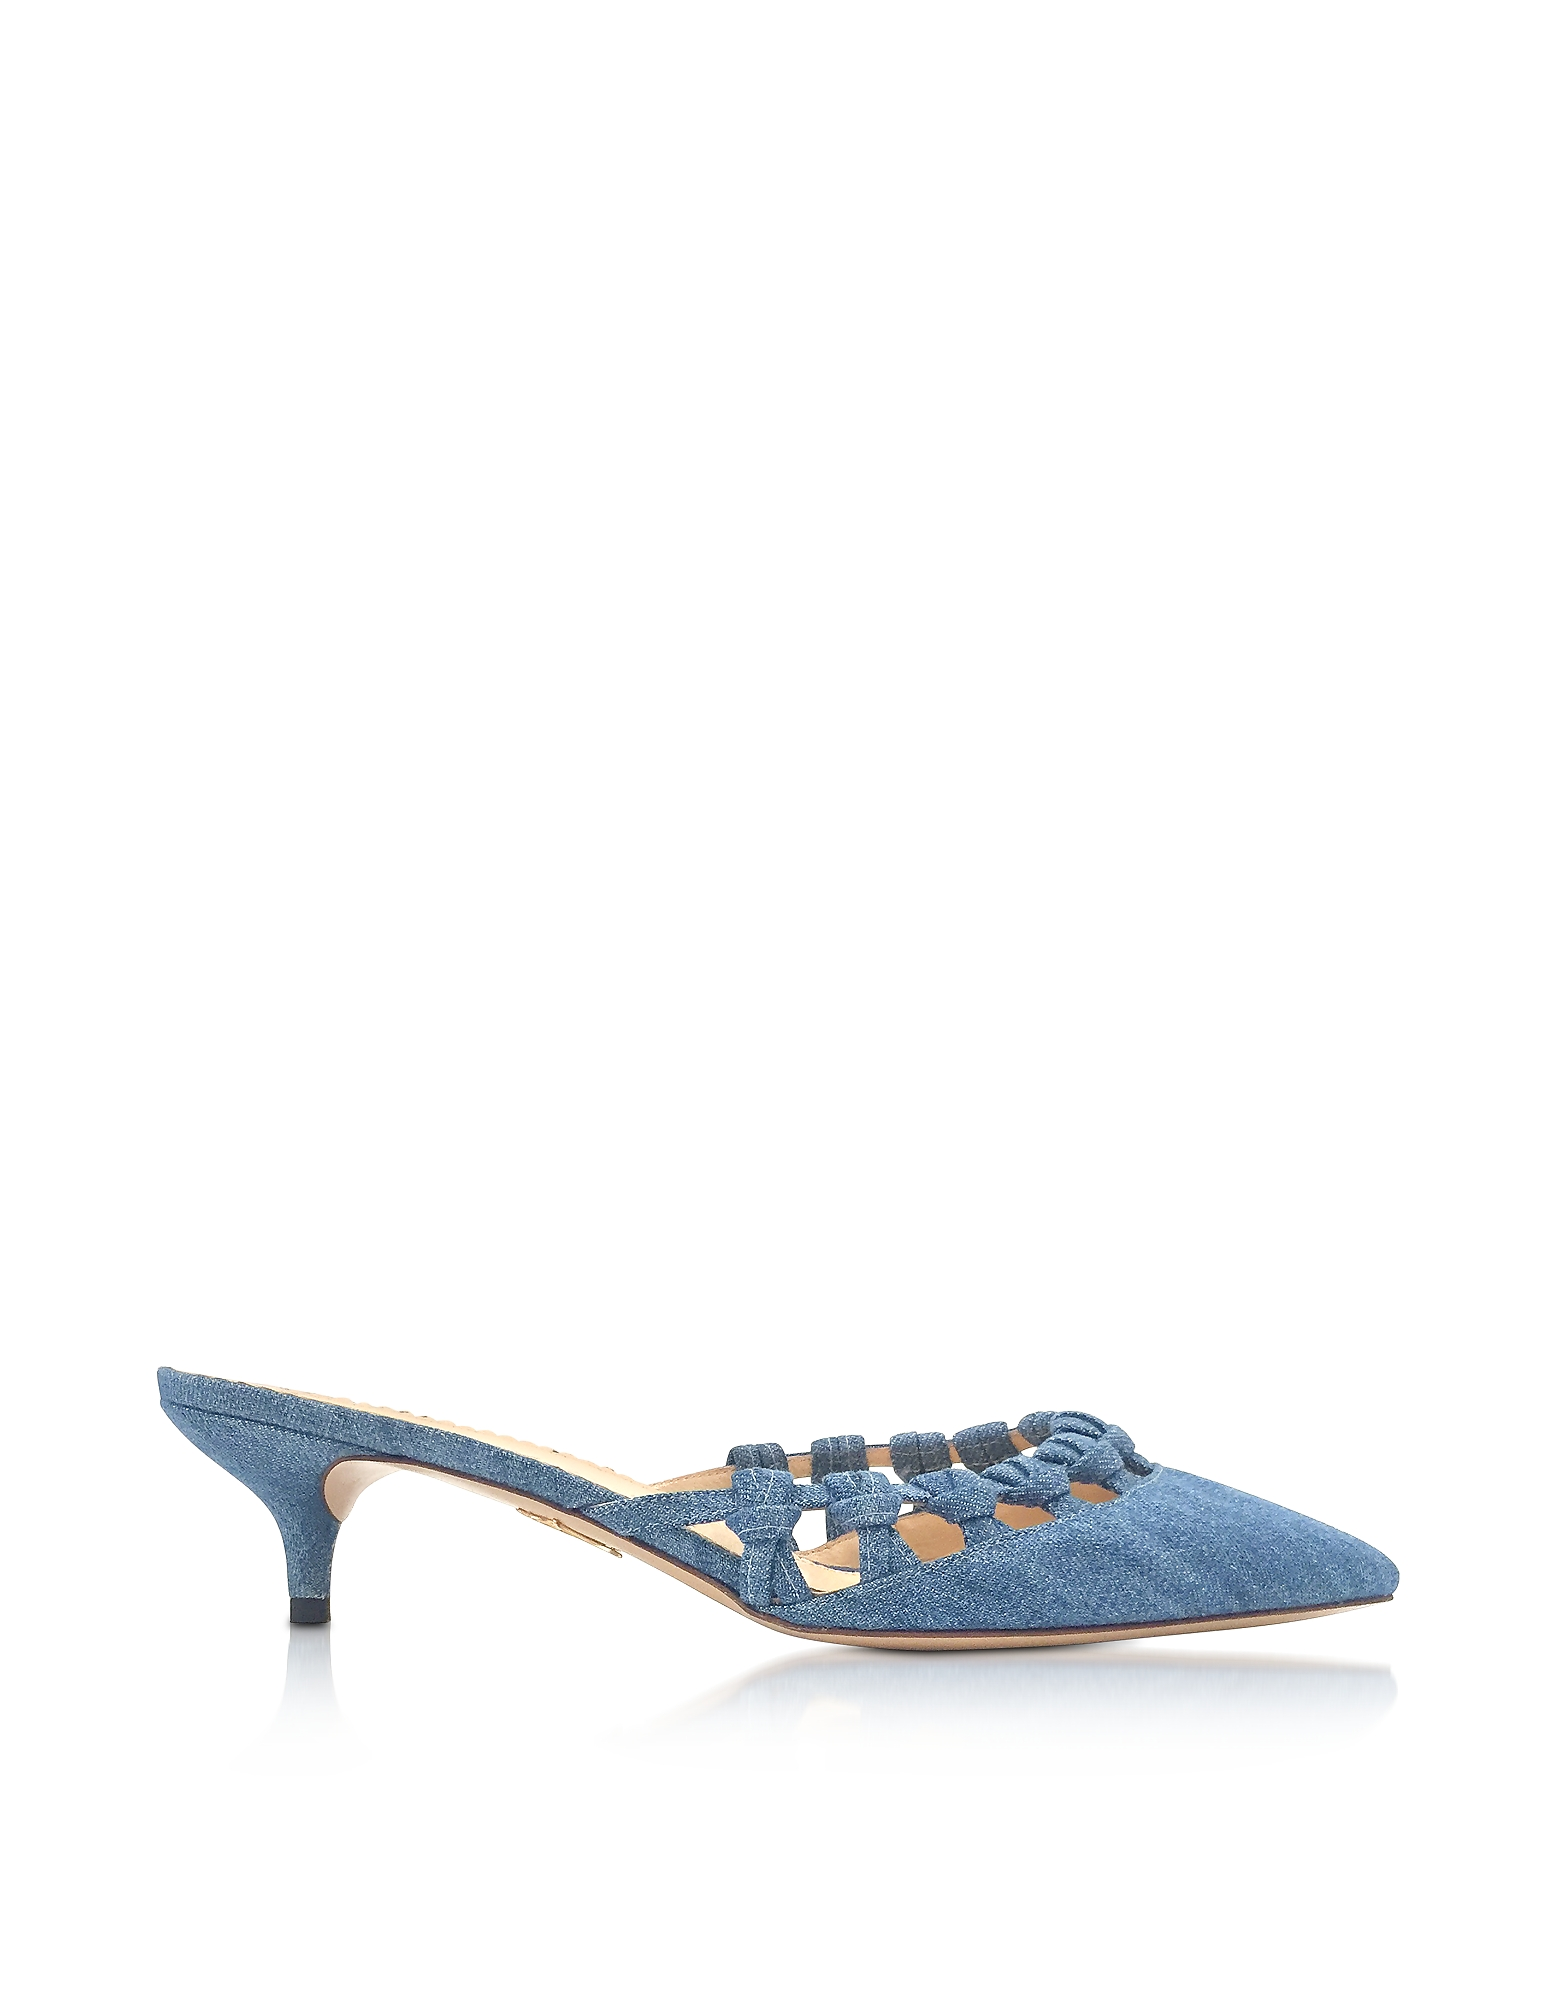 Charlotte Olympia Shoes, Patti Denim Mid-Heel Pointy Mule